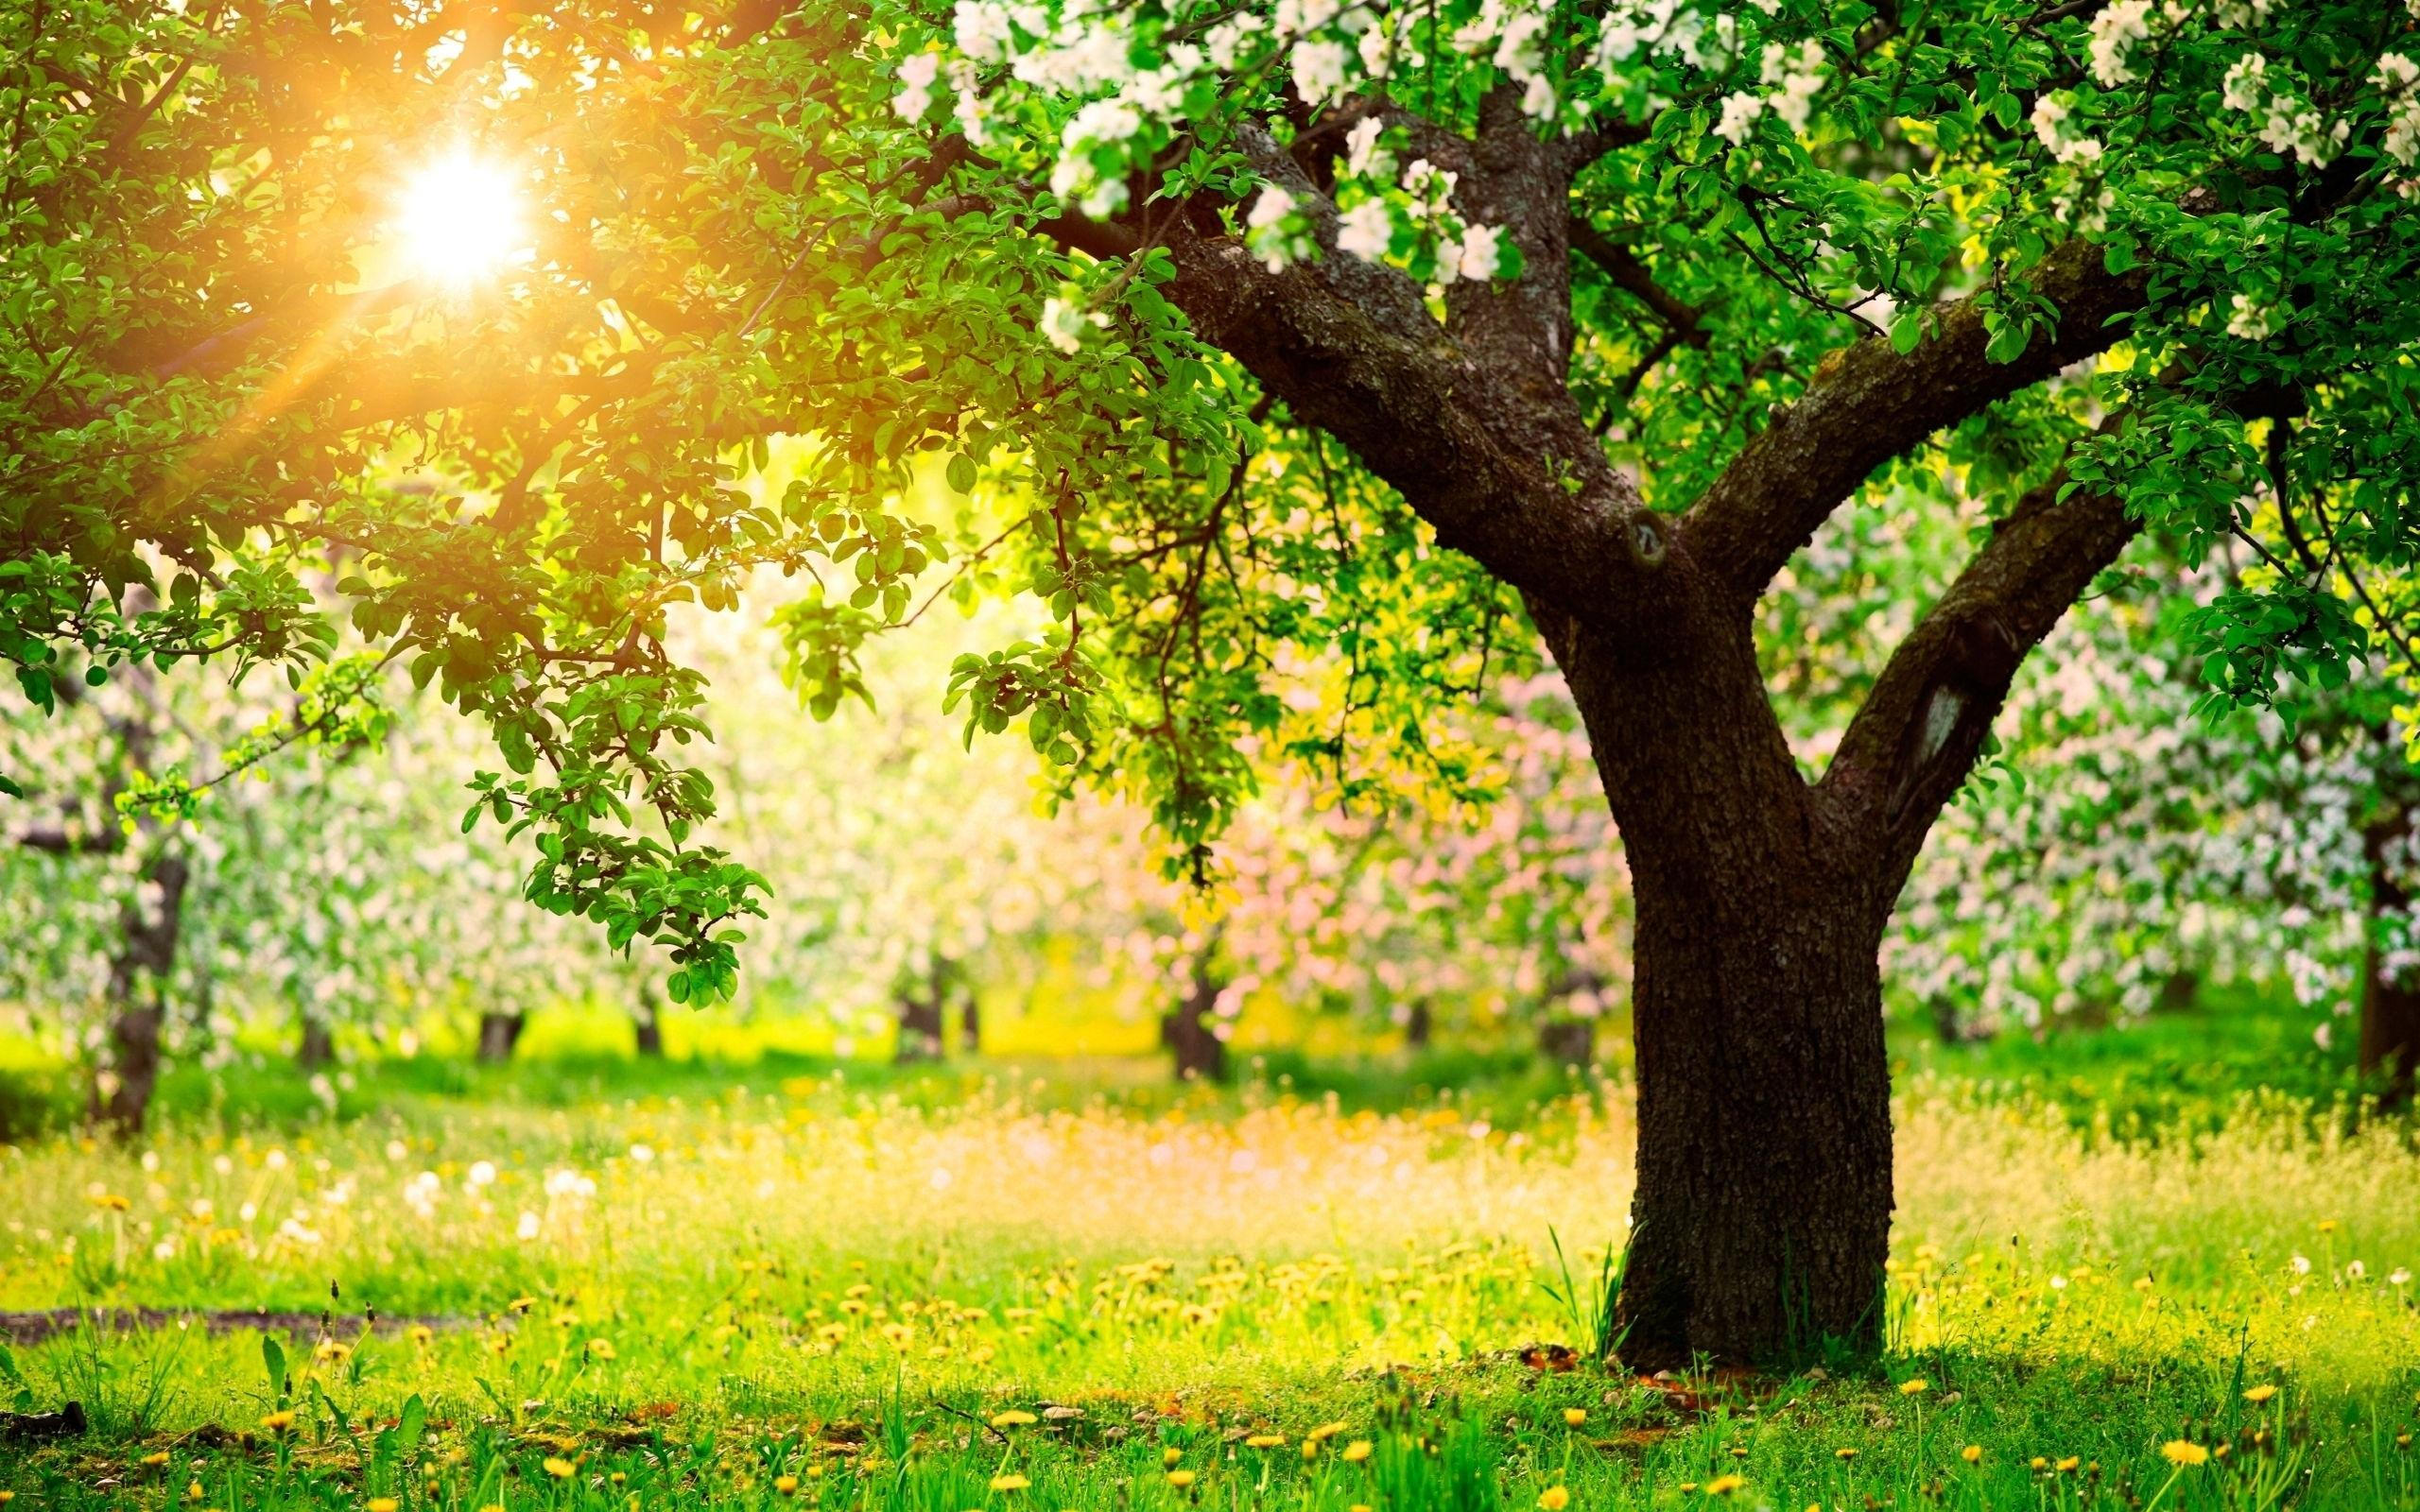 Trees Grass Flowers Sunny Day wallpapers